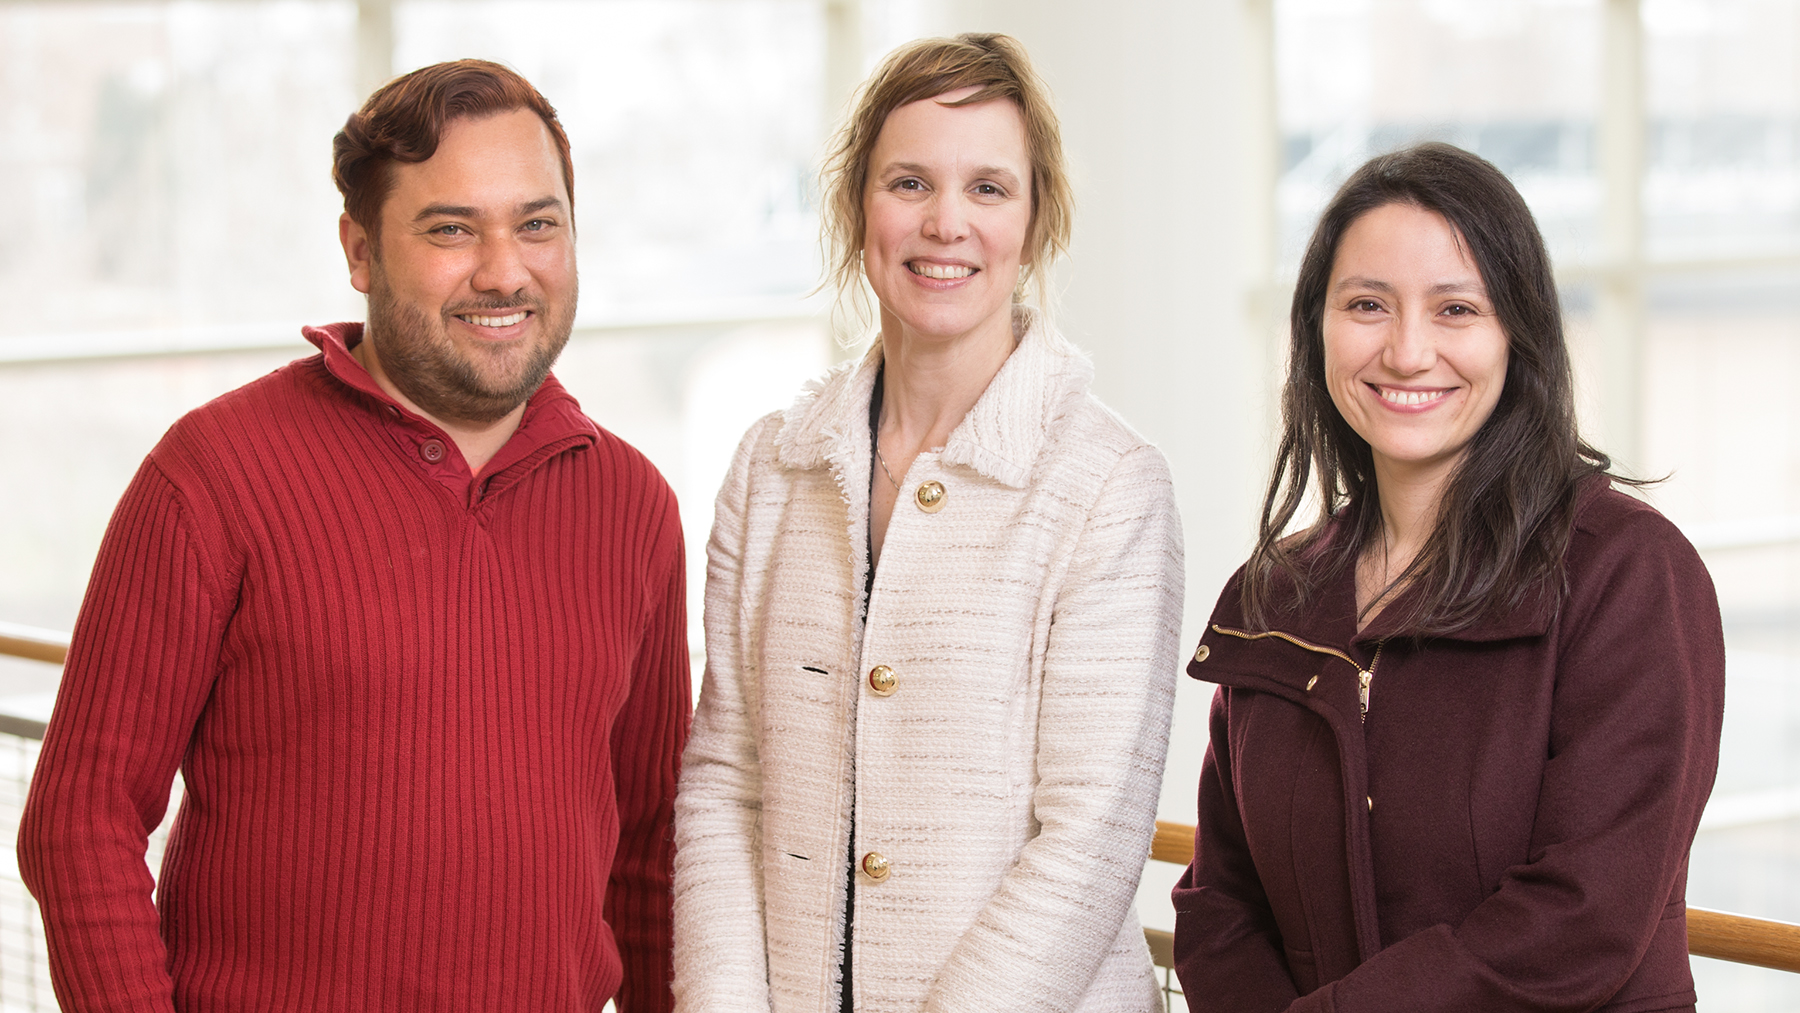 Speech and hearing science professor Laura DeThorne and doctoral students Henry Angulo and Veronica Vidal